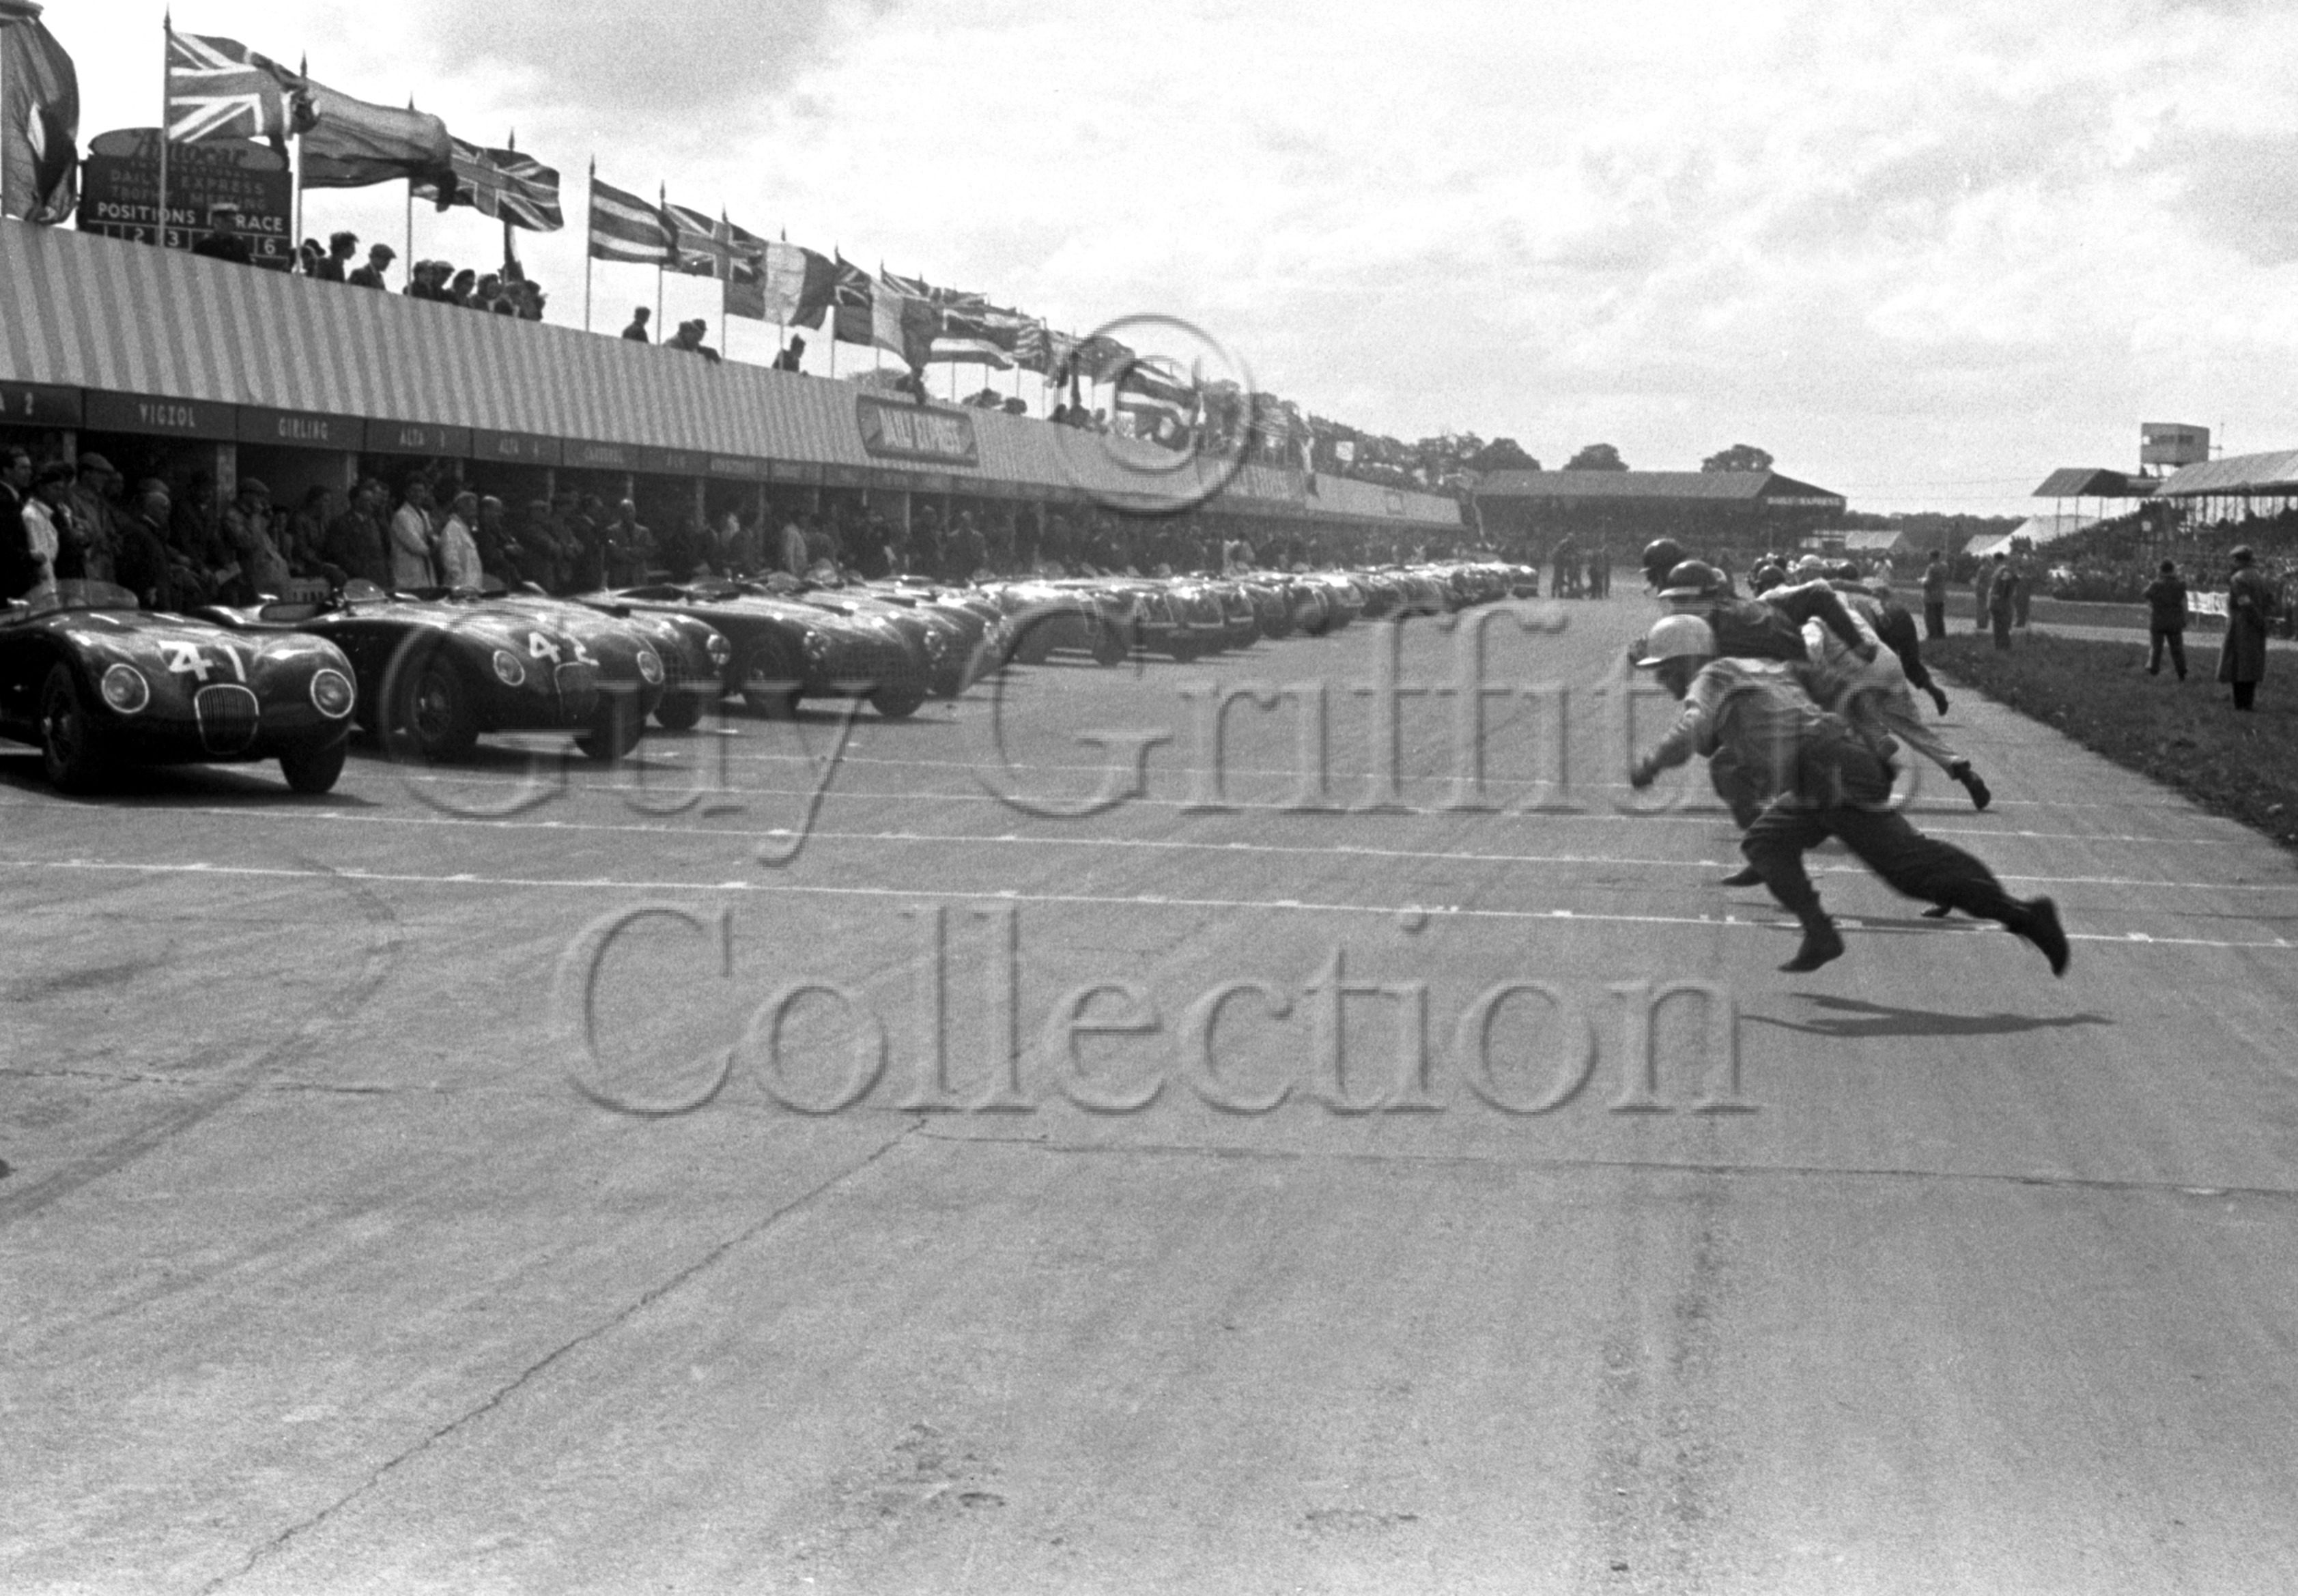 53-964–S-Moss–Jaguar–Silverstone–10-05-1952.jpg - The Guy Griffiths Collection